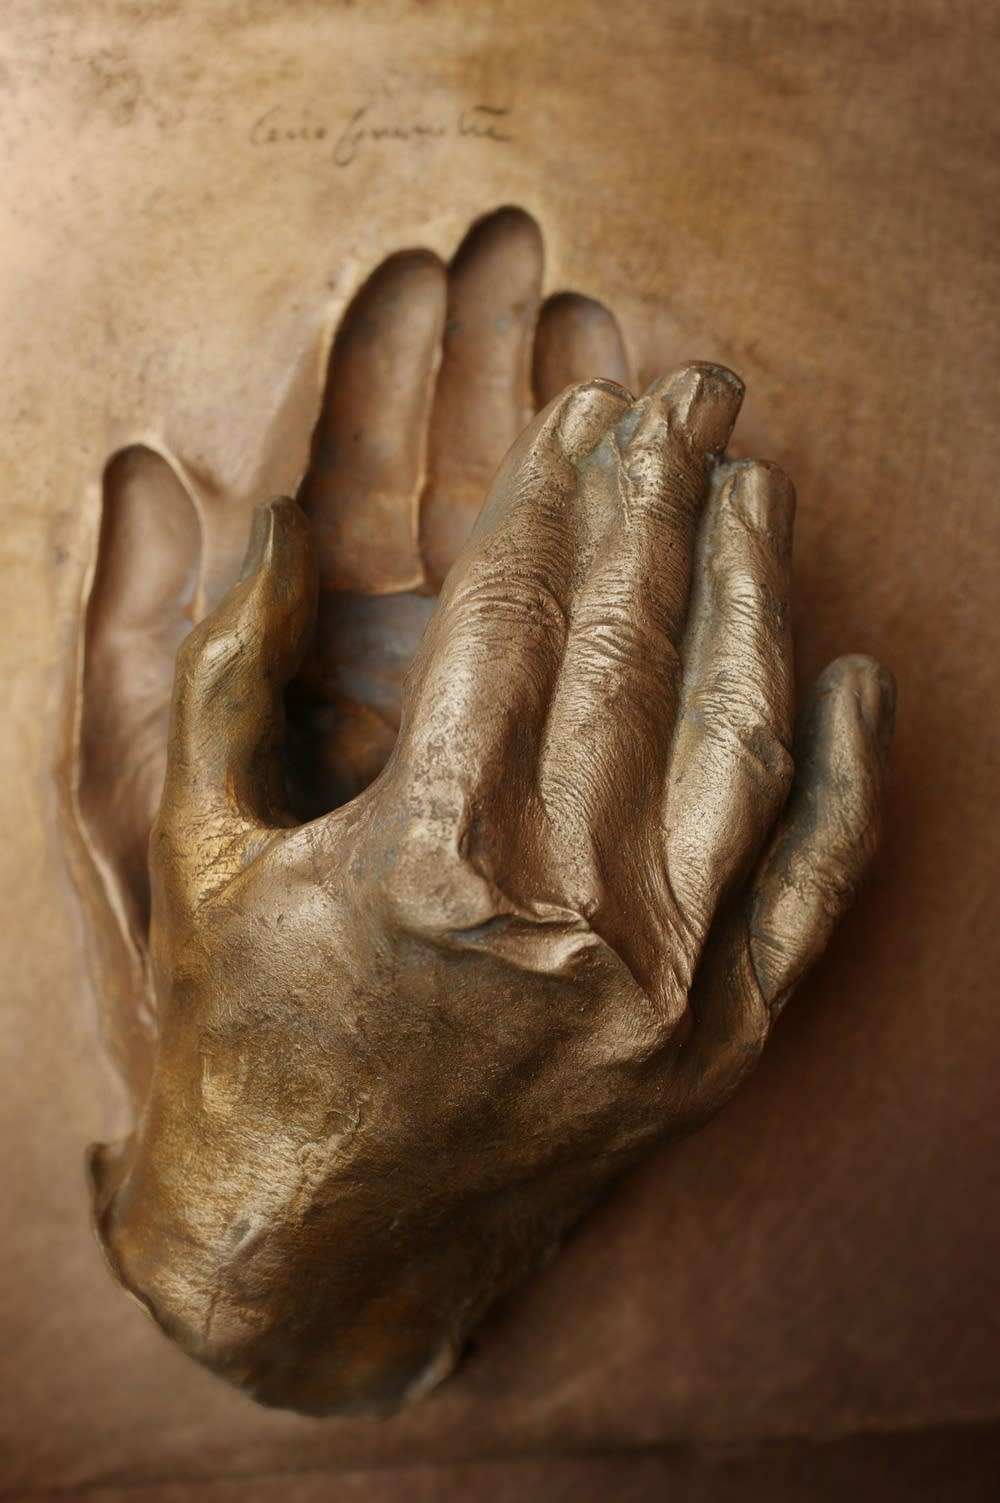 Hand of Pope John Paul II